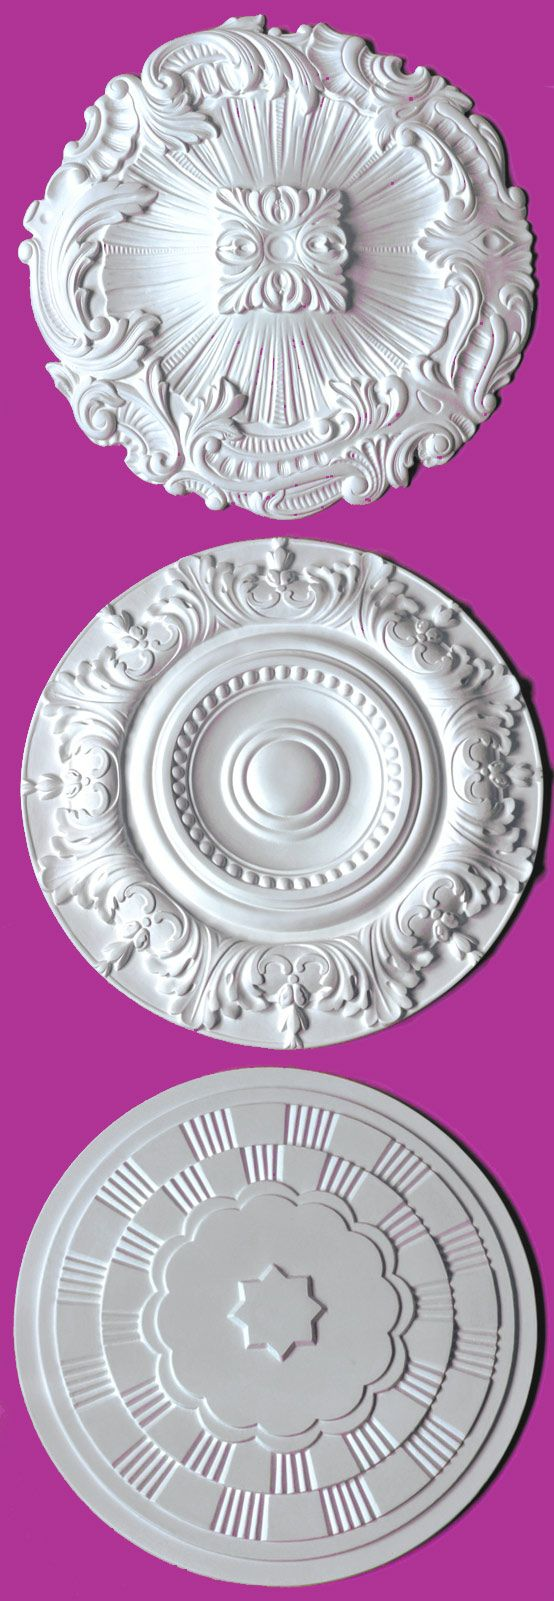 Plastering Ceiling Rose From Staff Decor Hamburg